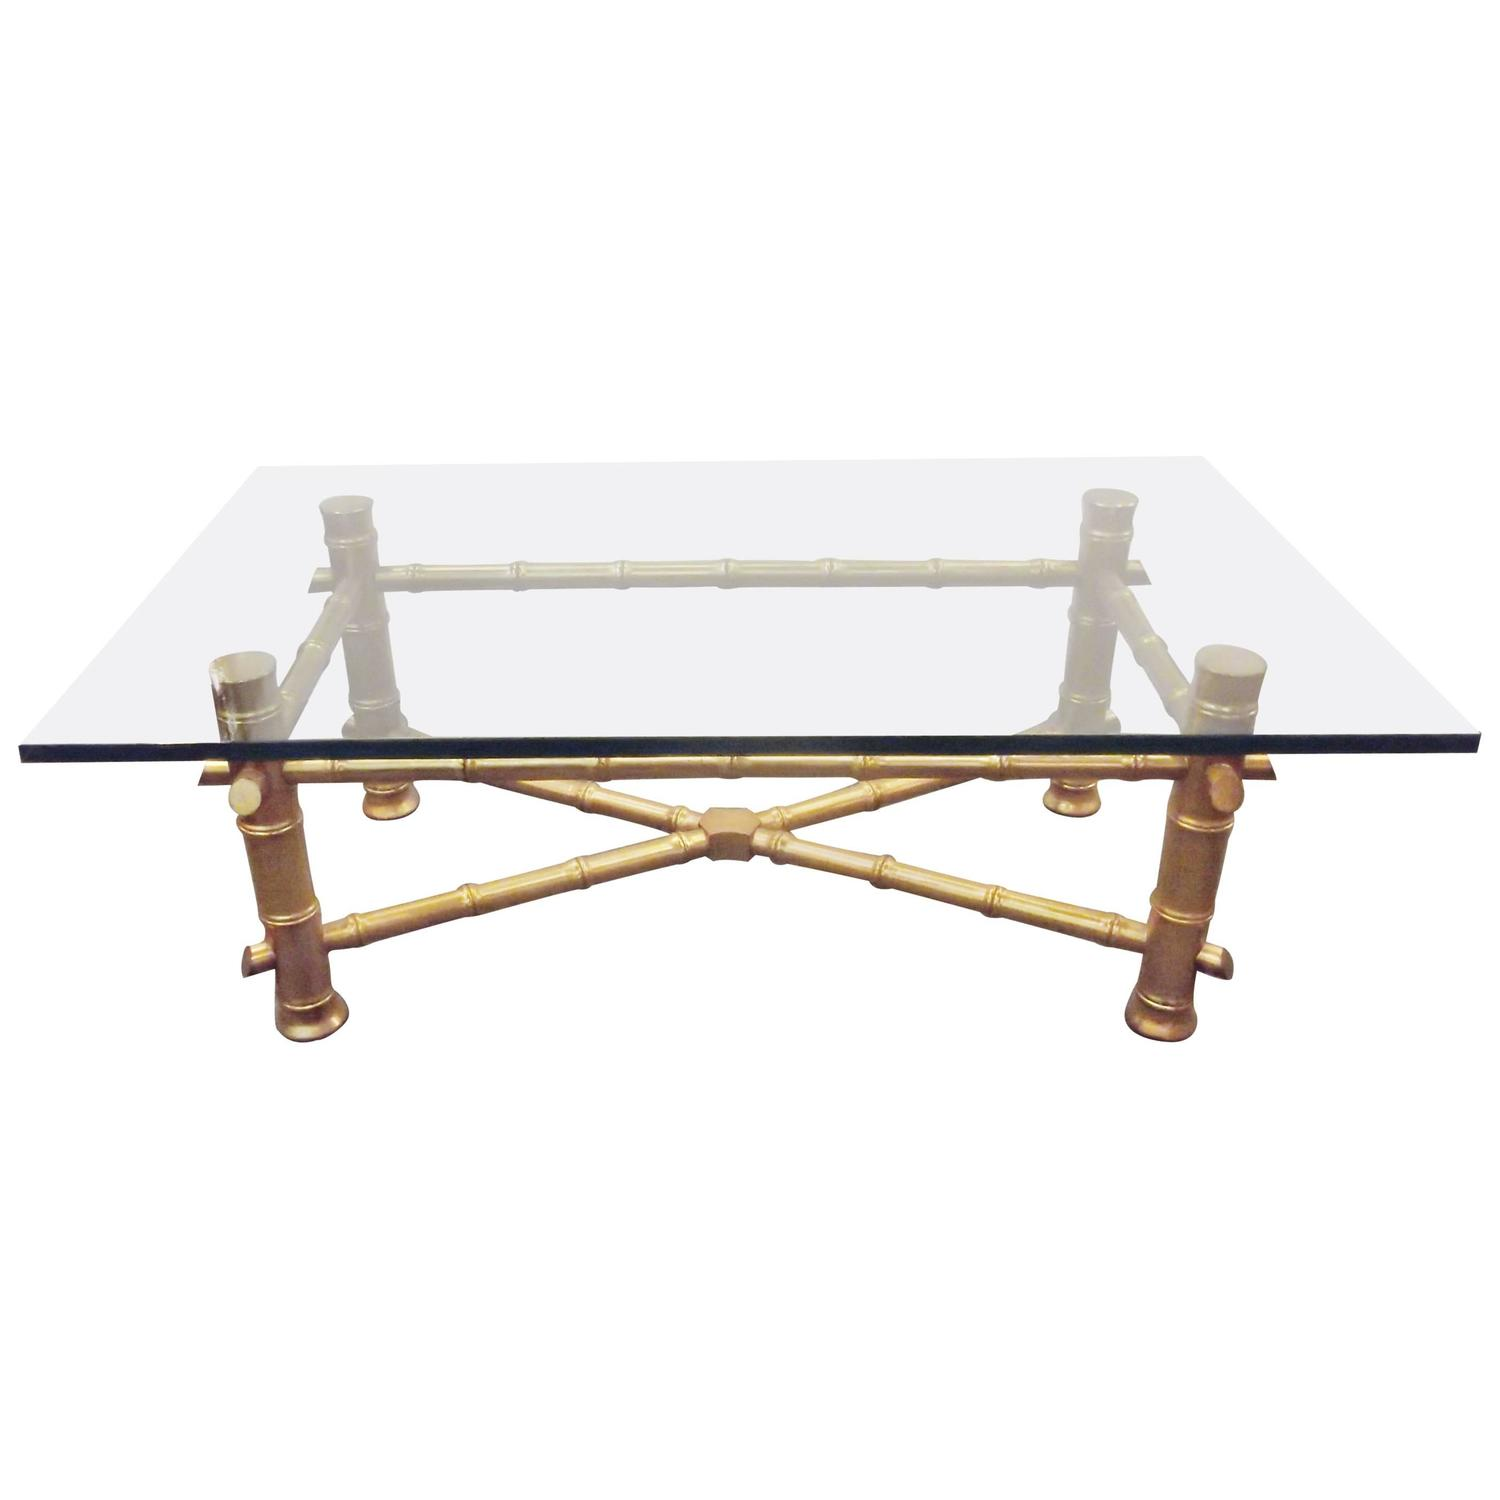 Very Impressive portraiture of Gilt Wood Faux Bamboo Cocktail Table with Thick Glass Top at 1stdibs with #8E6C3D color and 1500x1500 pixels